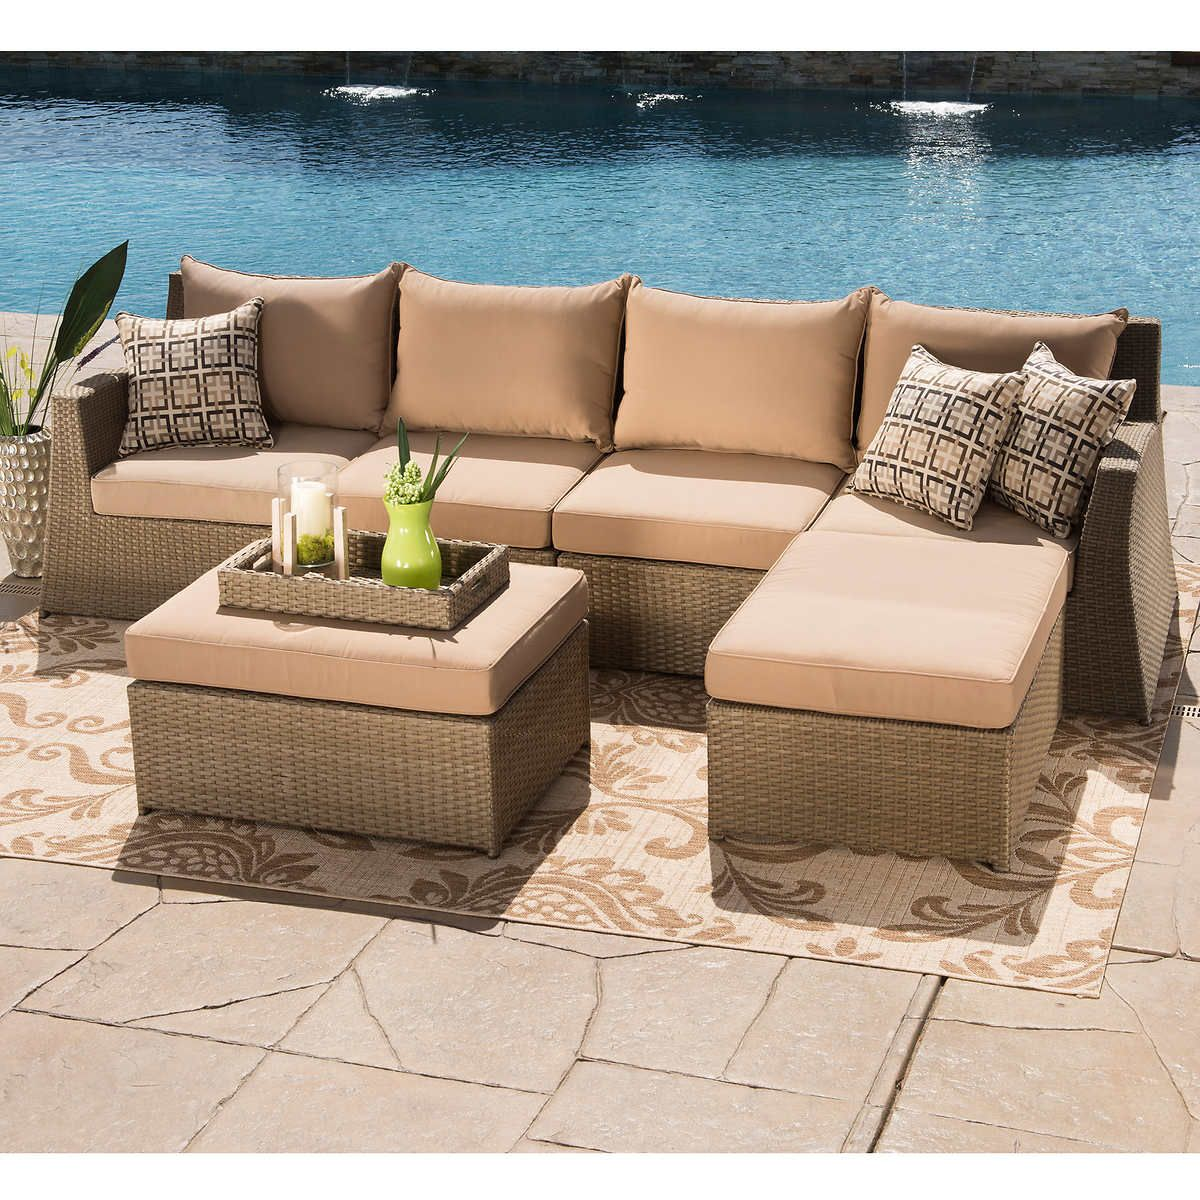 watsons outdoor furniture covers